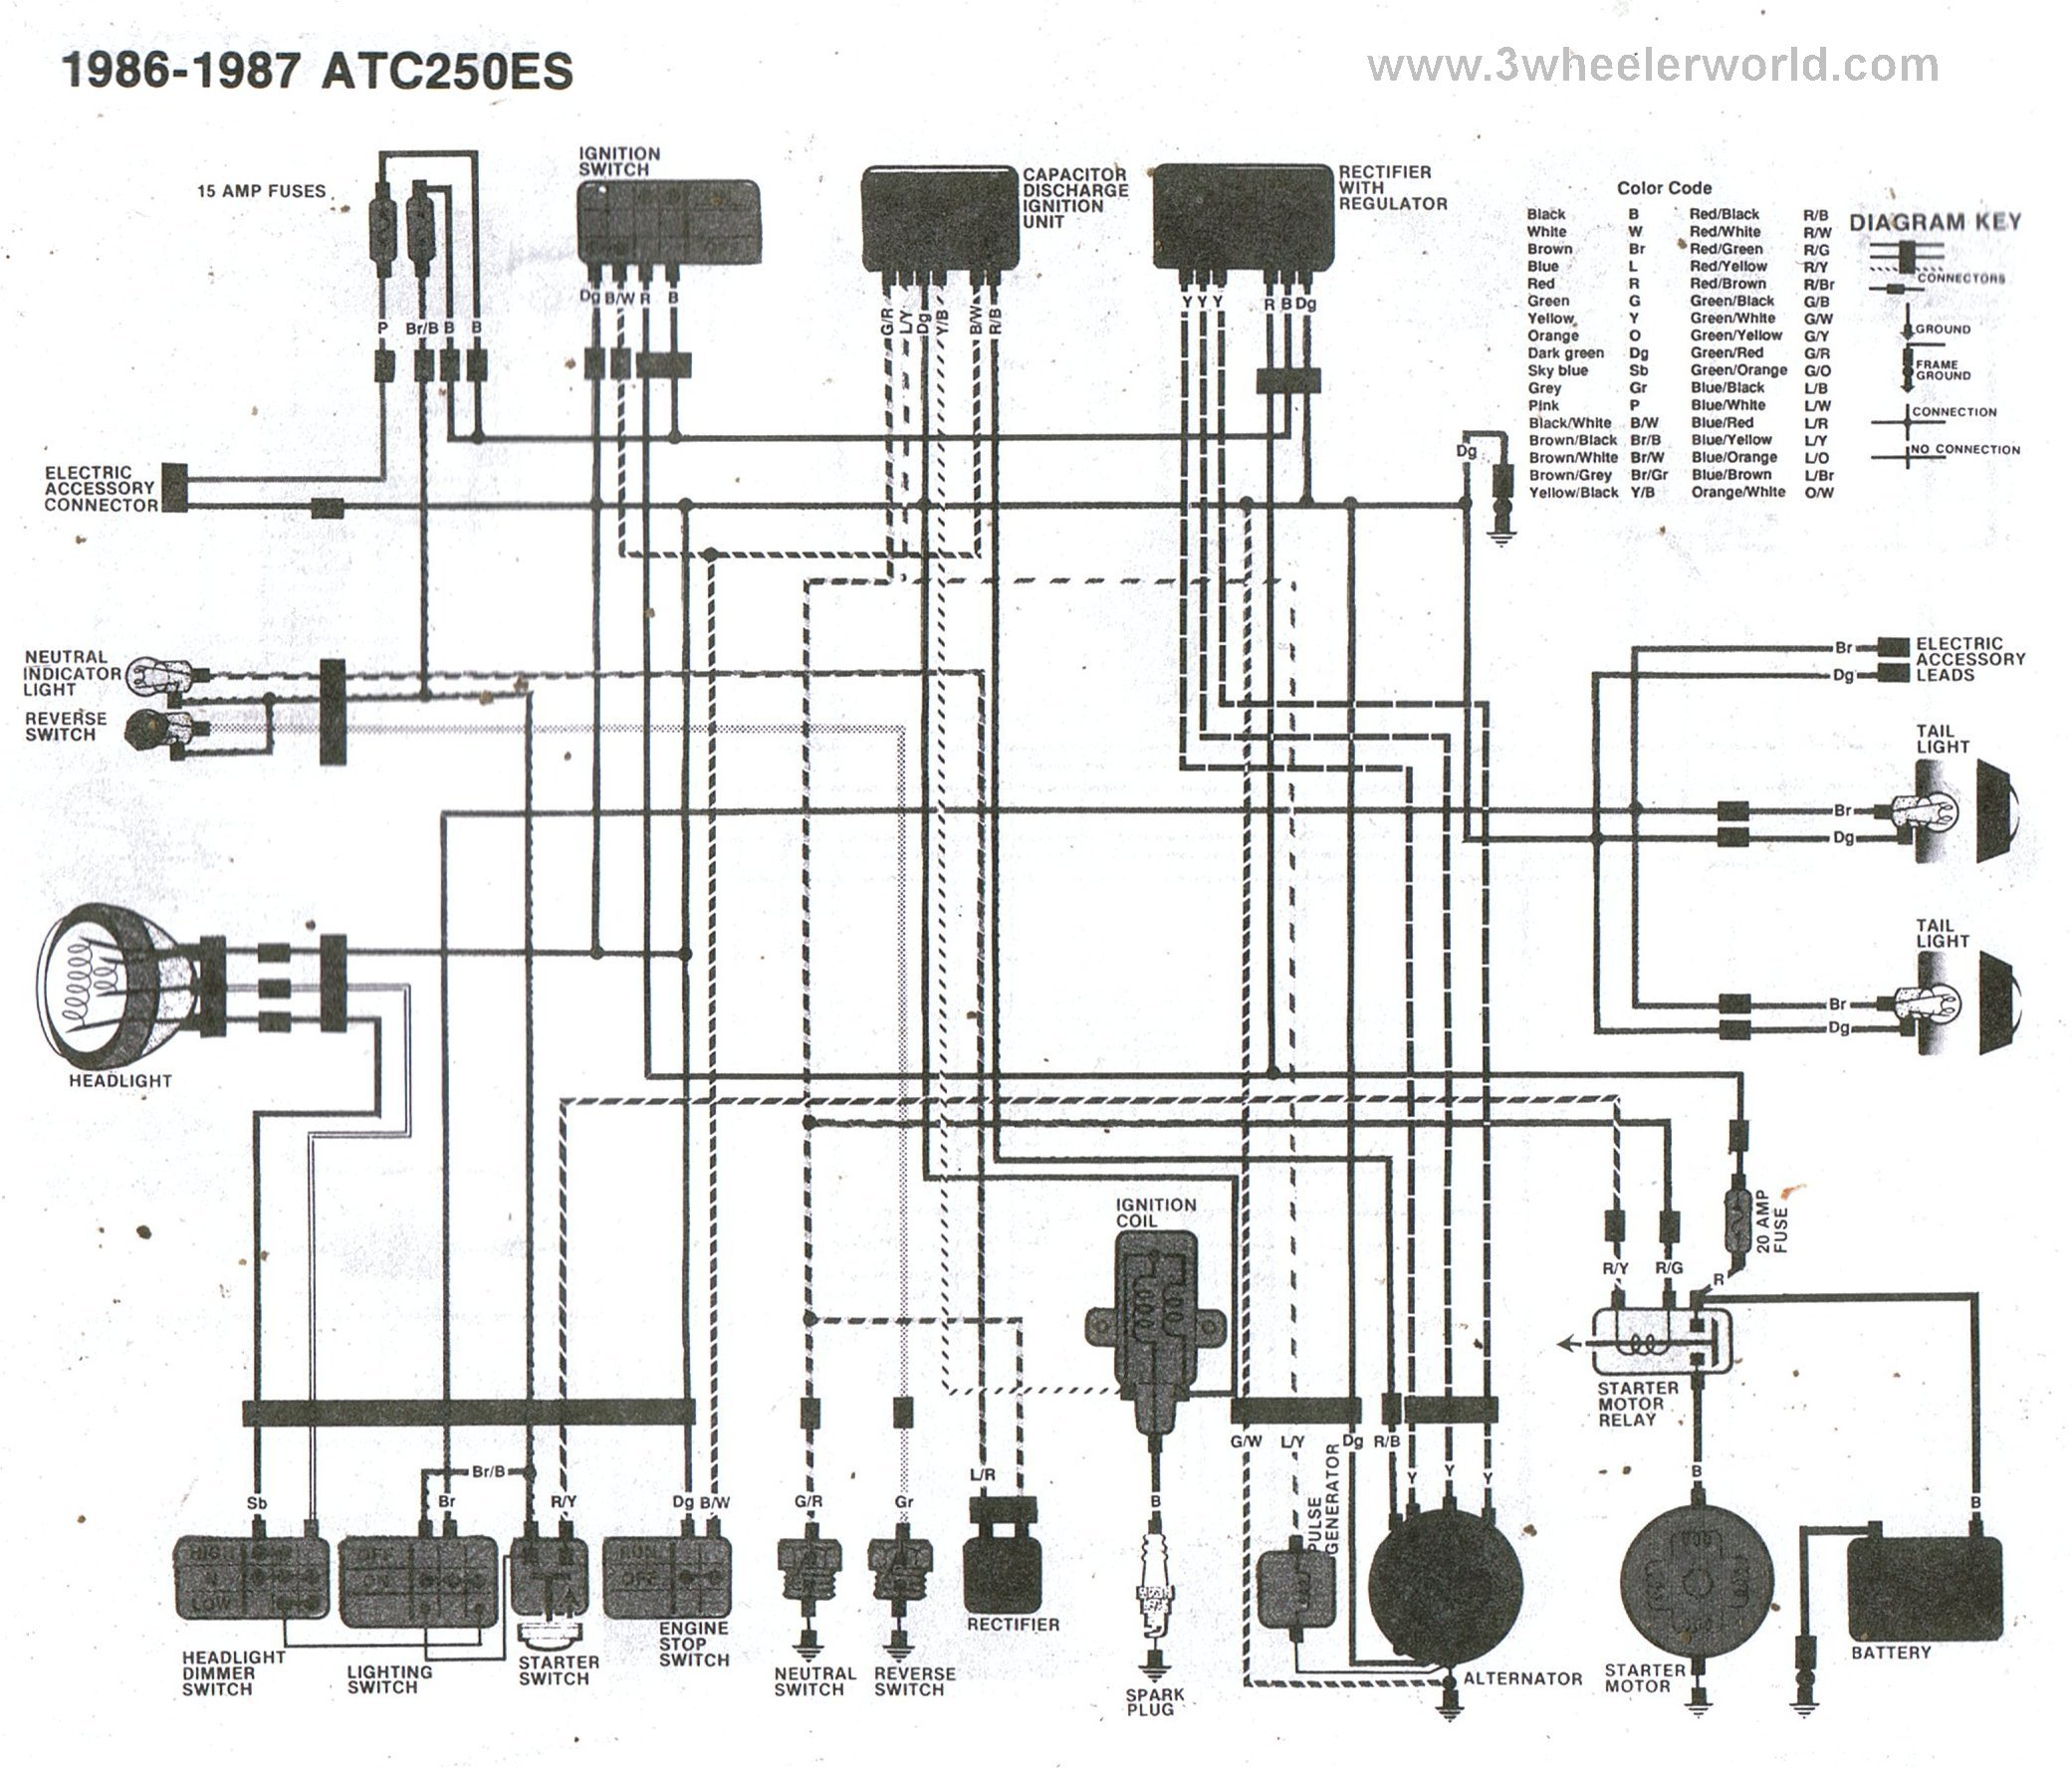 1985 Honda Trx 250 Wiring Diagram Content Resource Of Sl350 3 Wheeler World Tech Help Diagrams 85